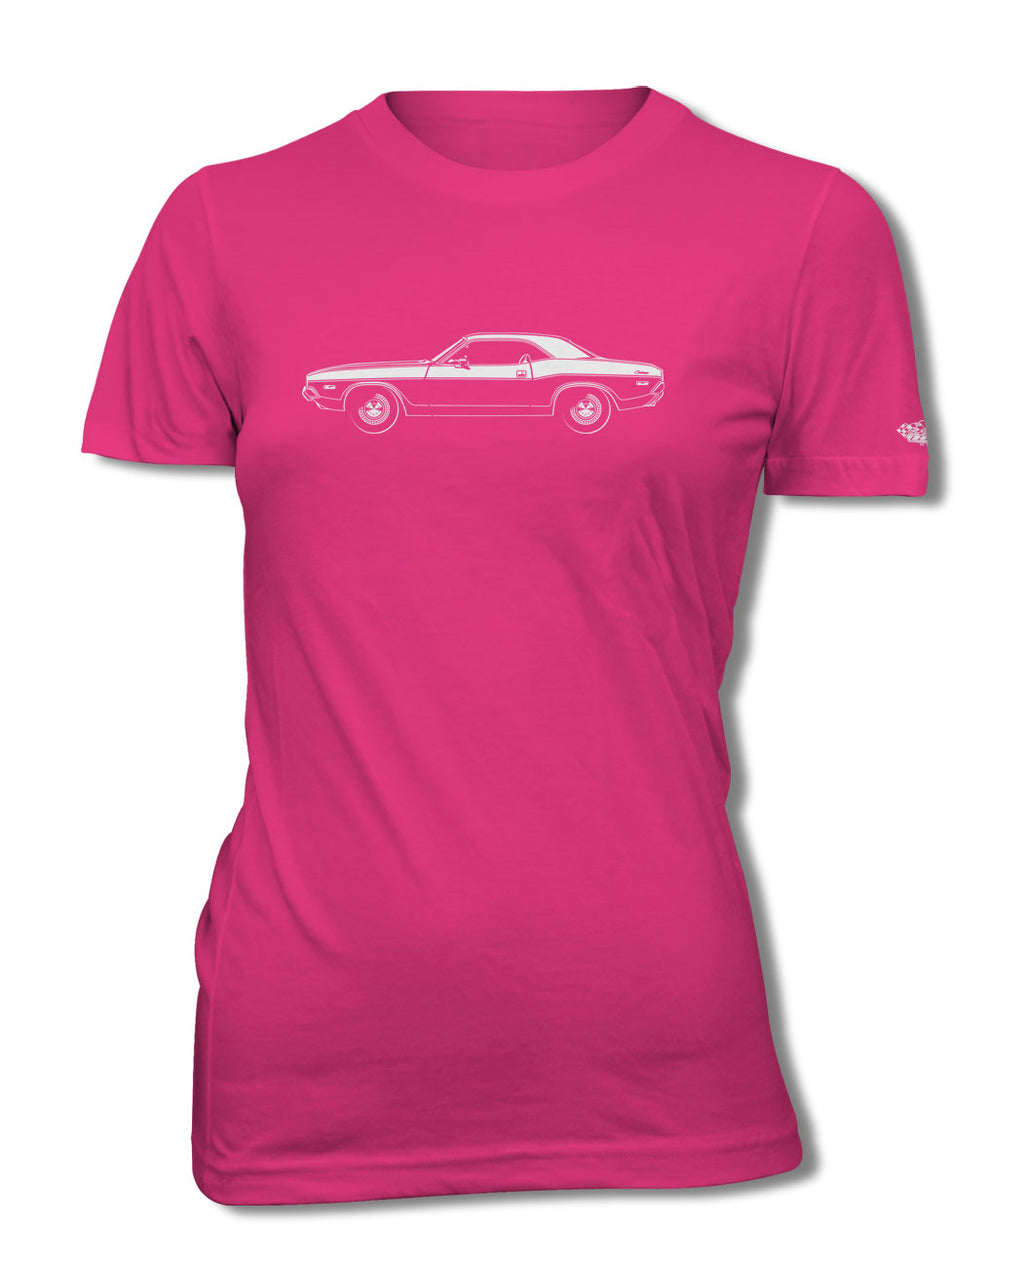 1972 Dodge Challenger Base Coupe T-Shirt - Women - Side View